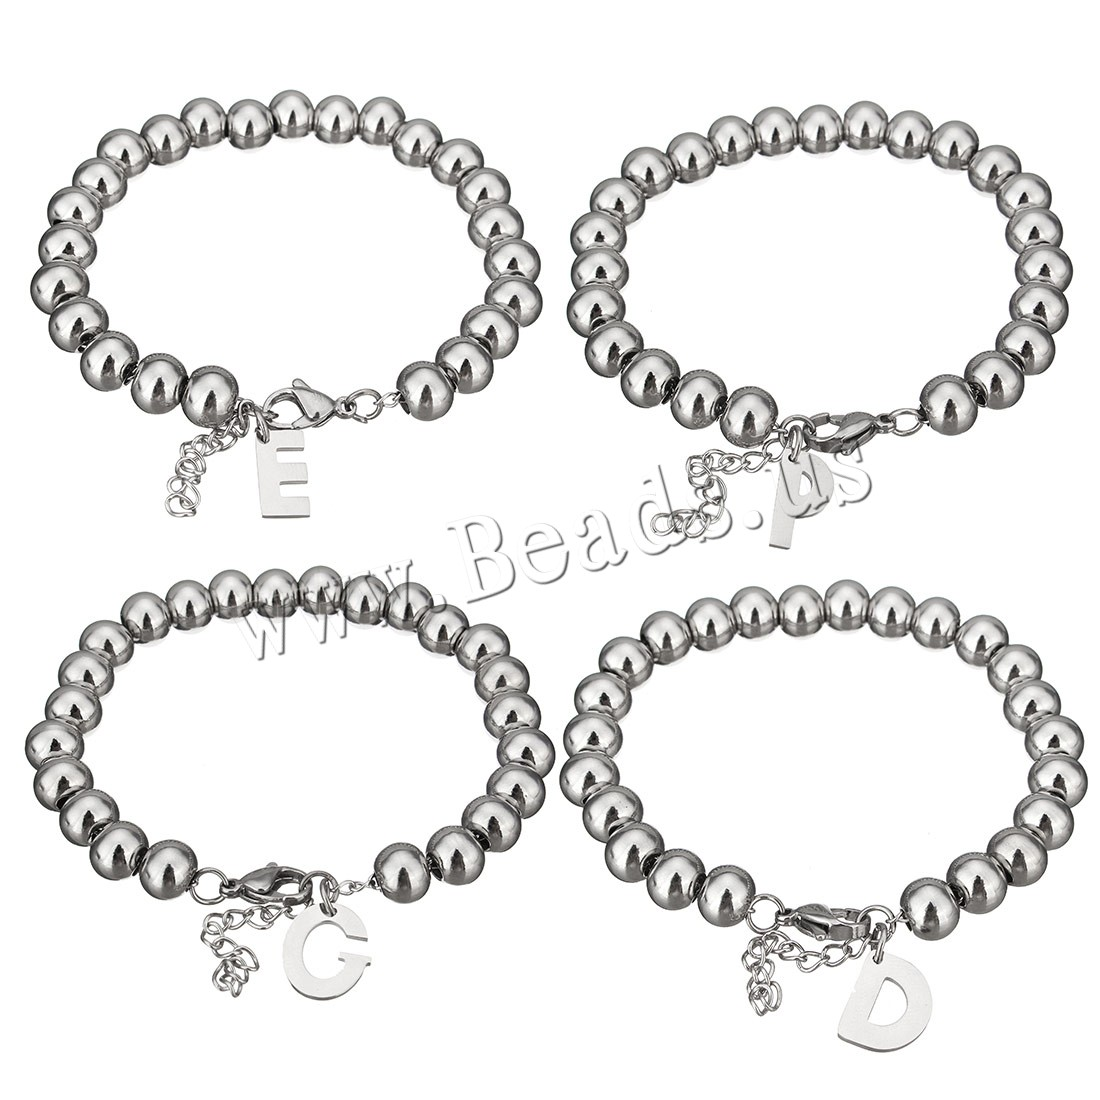 Buy Stainless Steel Jewelry Bracelet 1.5Inch extender chain Letter letters Z & charm bracelet & beaded bracelet & woman original color 5-14x9-14mm 6x8mm Sold Per Approx 7 Inch Strand